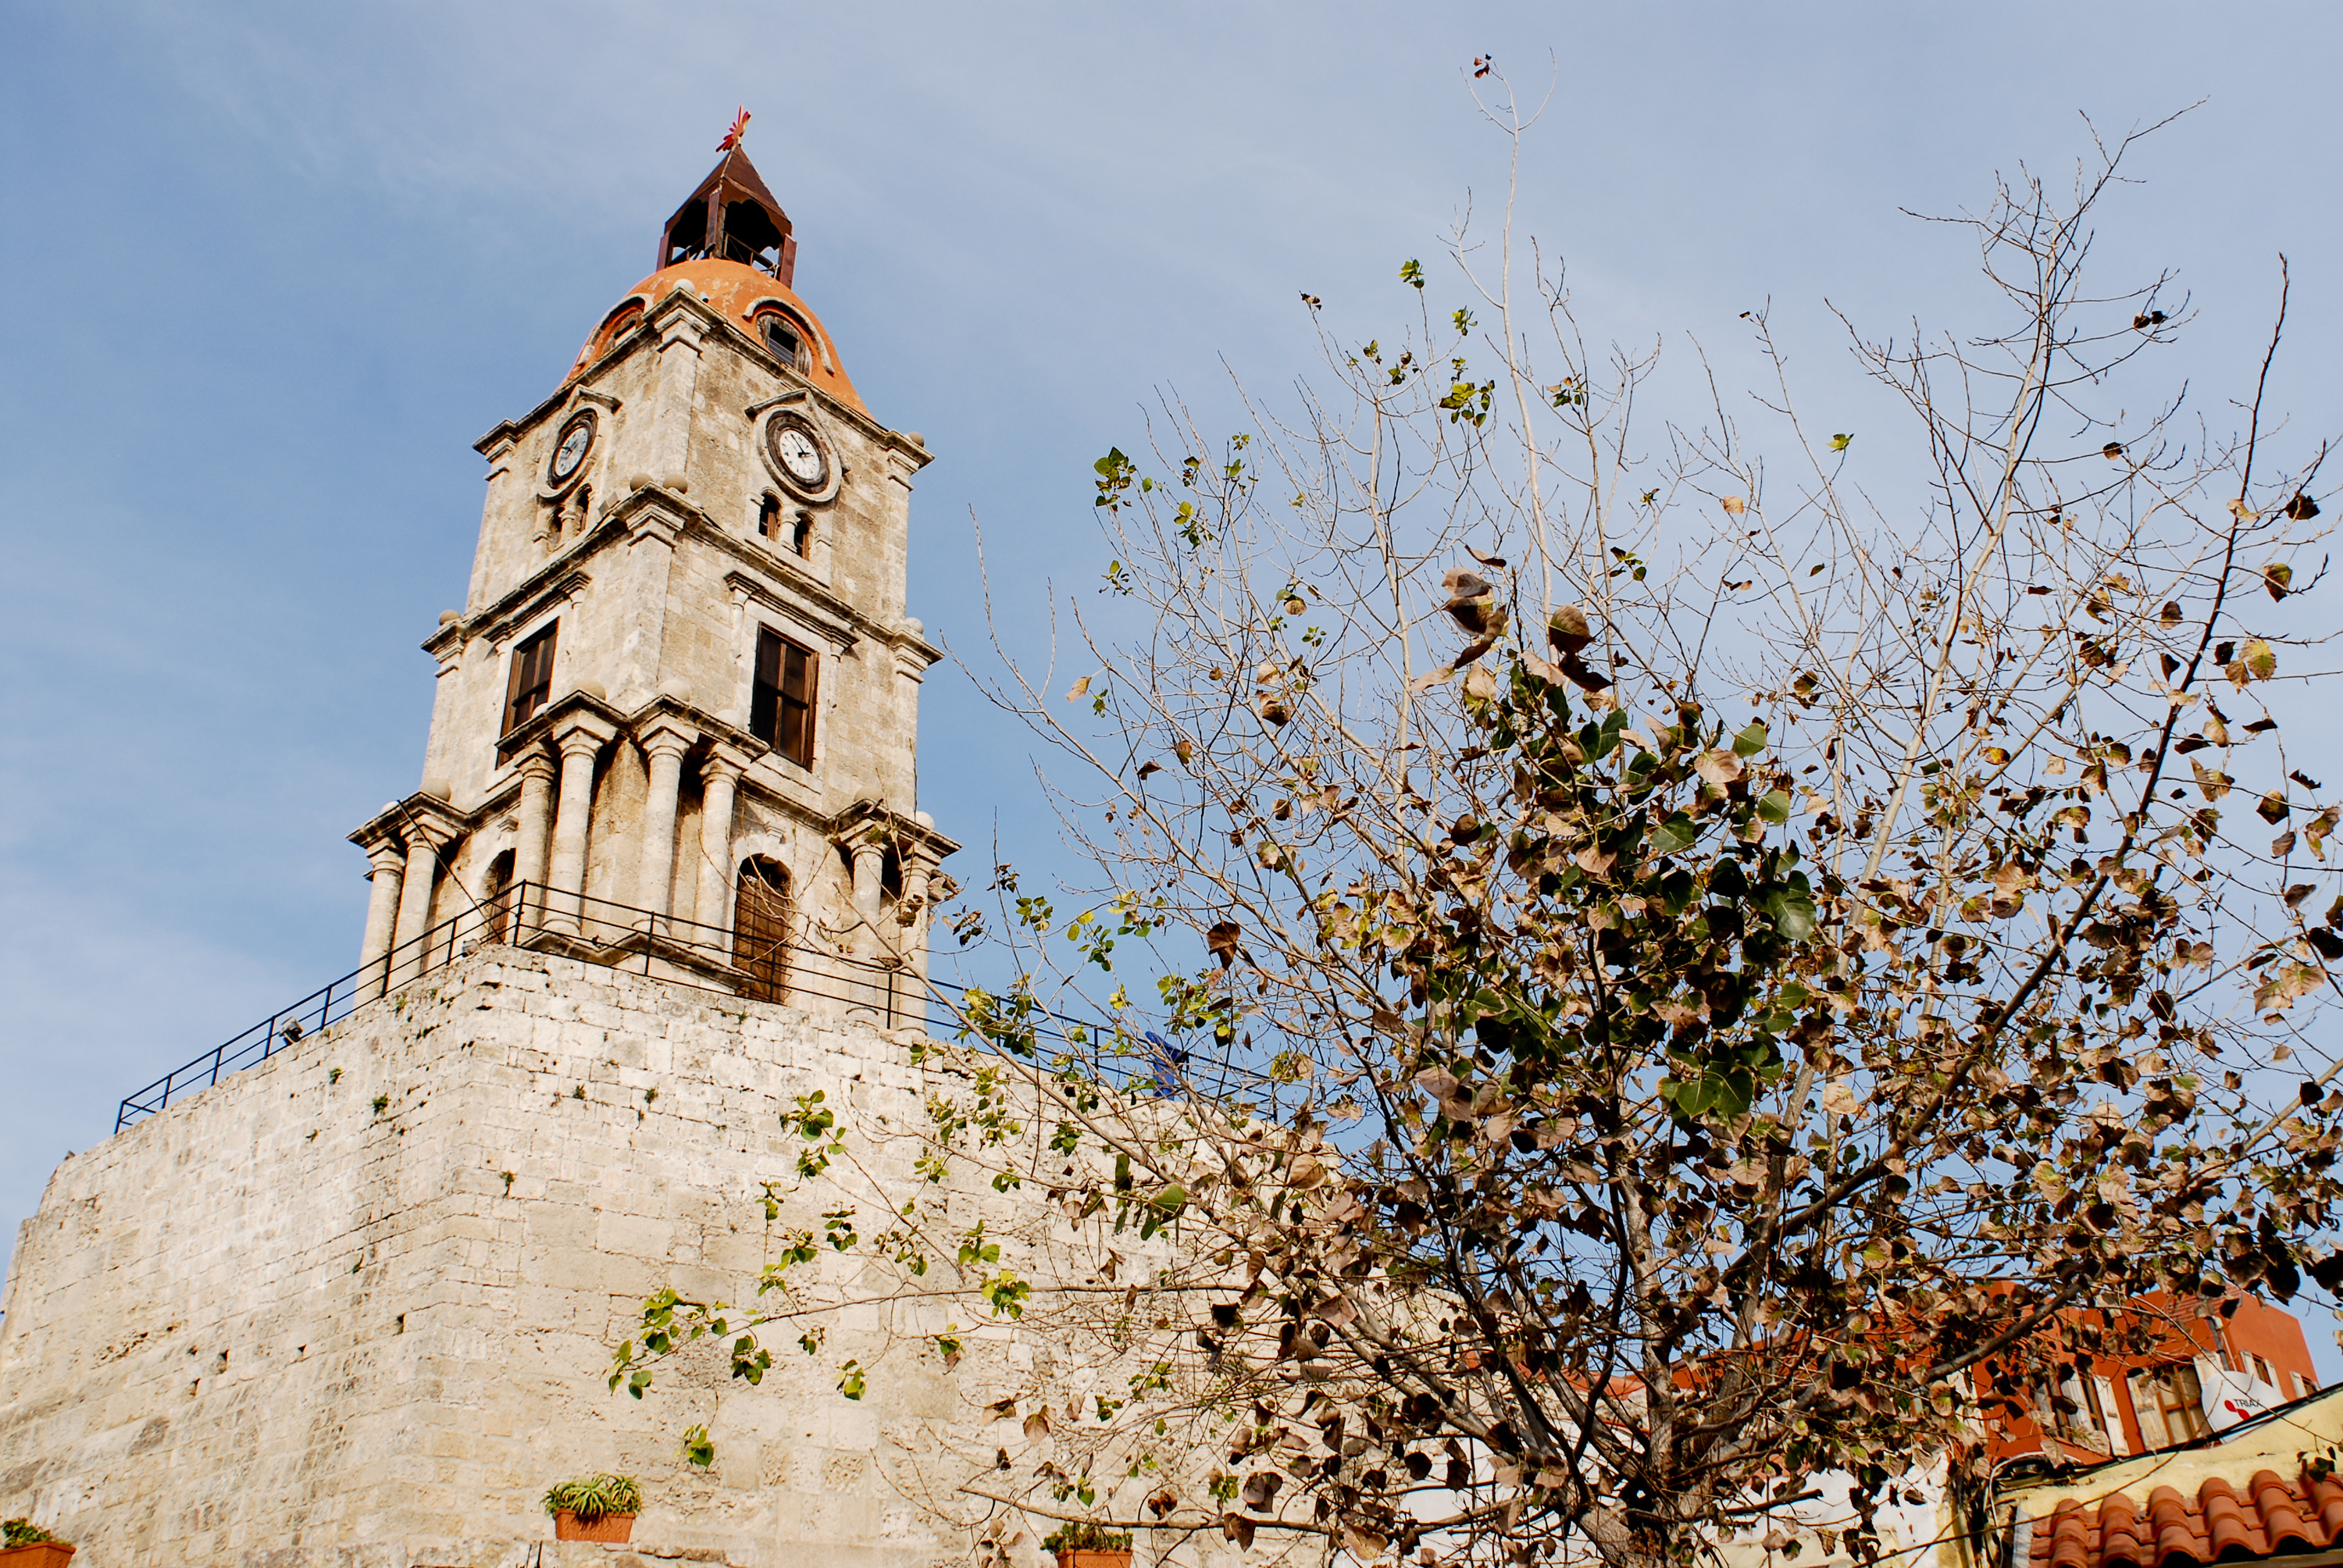 File:View of the Roloi (Clock Tower) in the Old Town ...